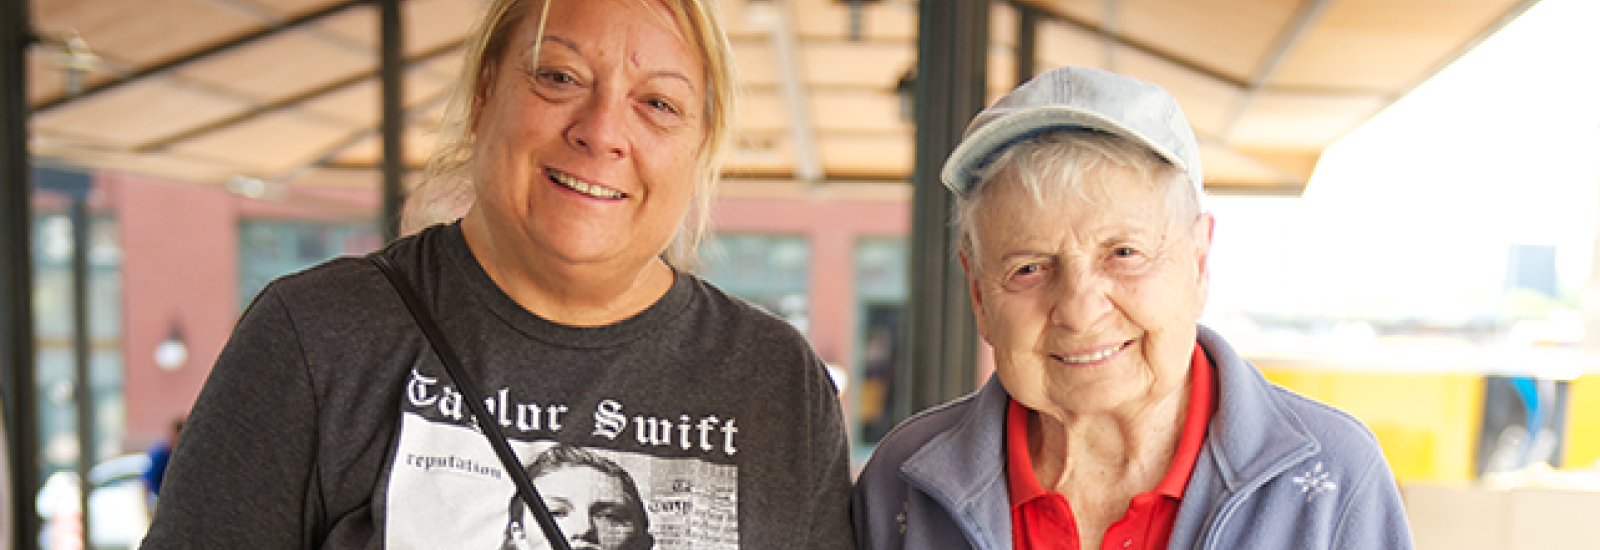 Older adult and their family caregiver at a market in Saint Paul, MN